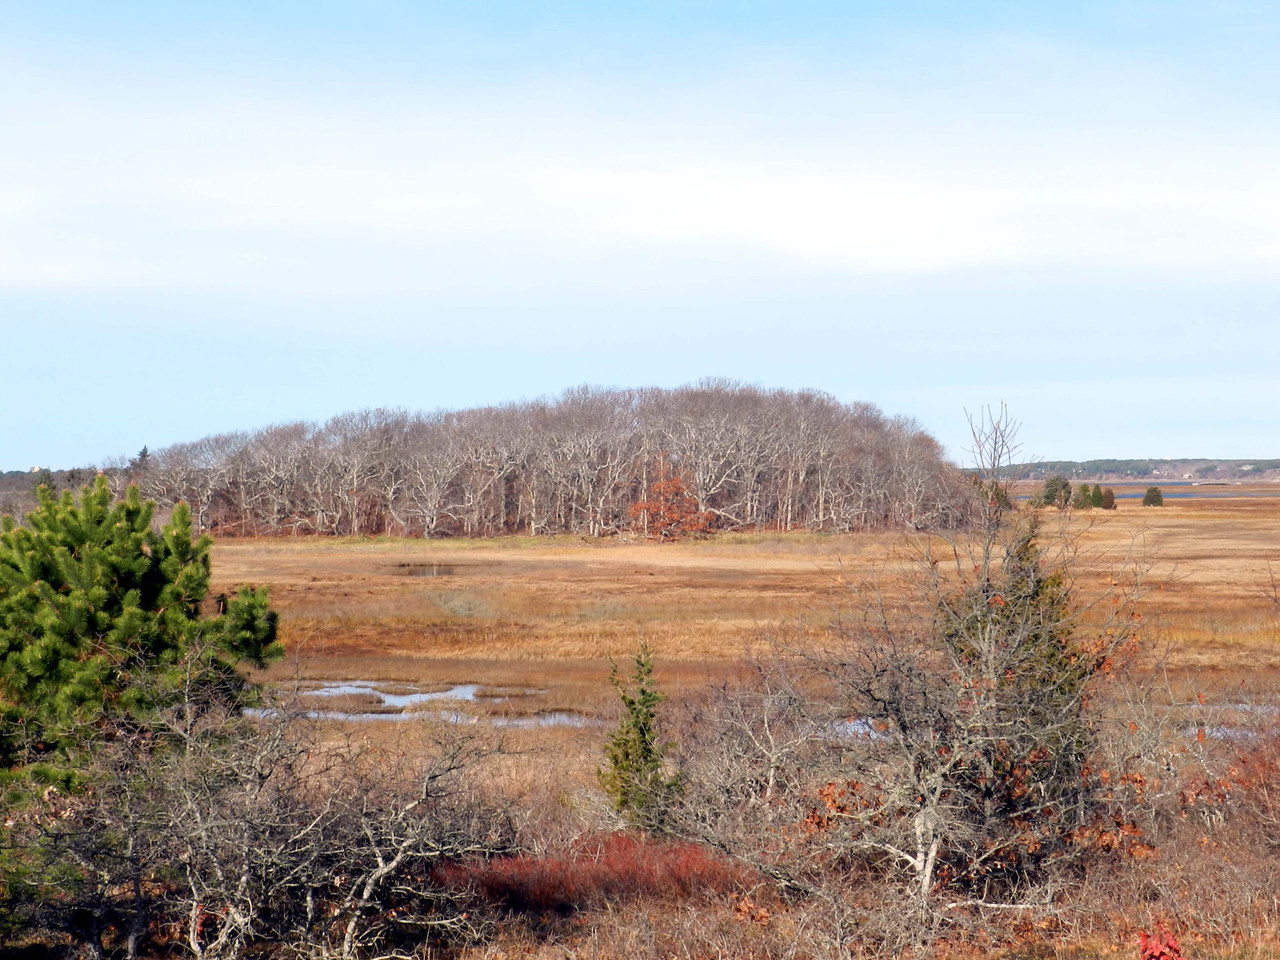 view from the MA Audubon Sanctuary in Wellfleet -- an oak grove dominating a kame formation in the marsh speaks to glacial foundations and reminds me of home.